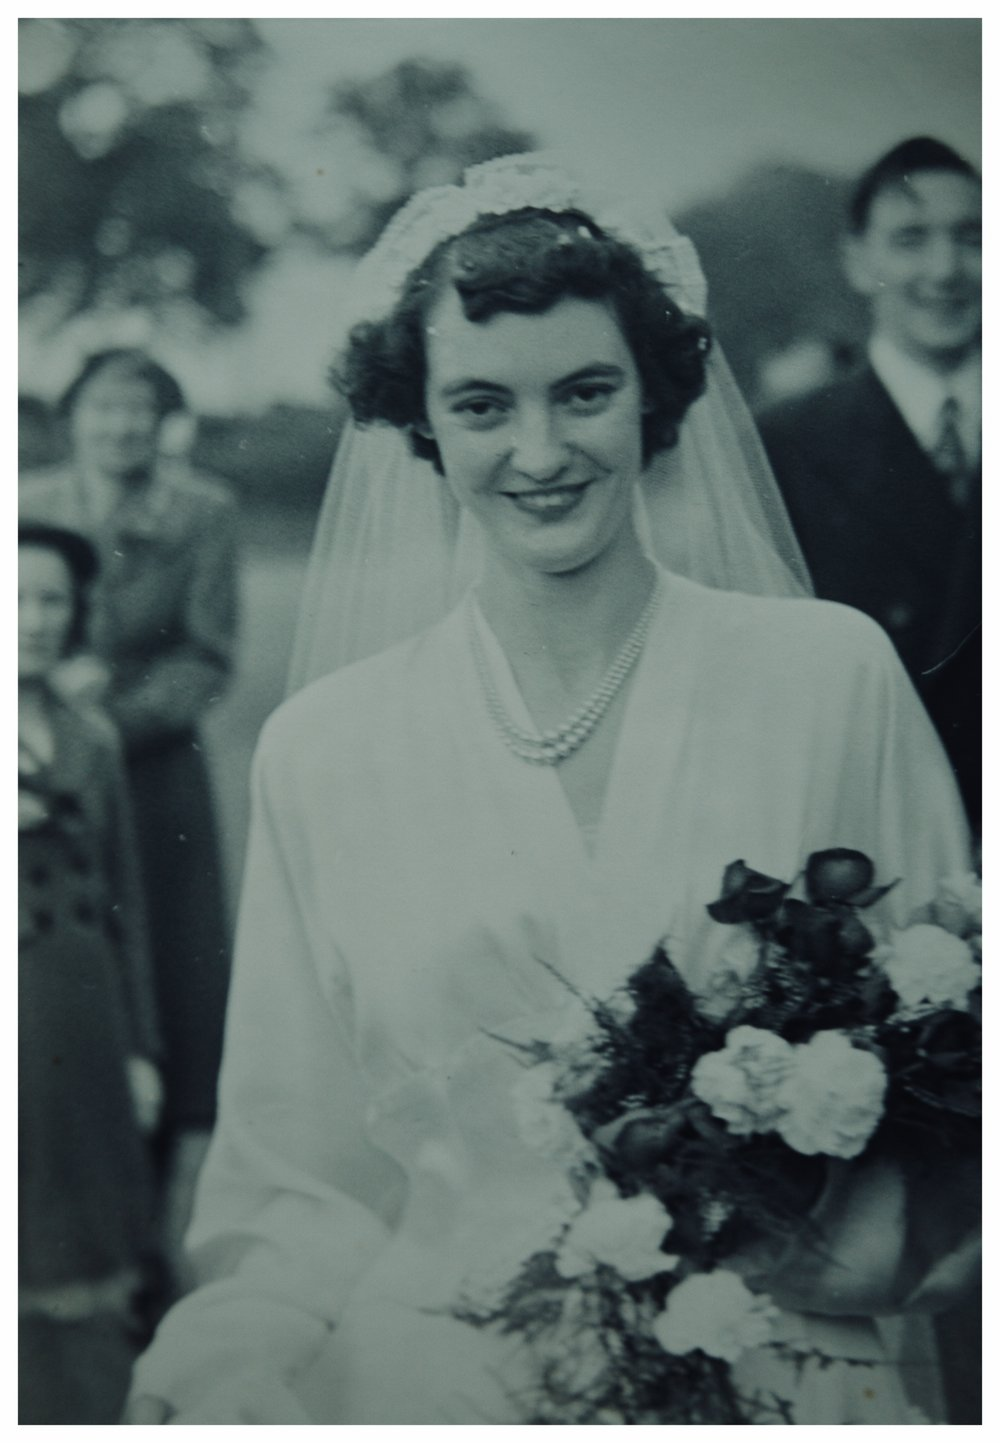 My Grandmother Ellen, on her wedding day. You can see my grandfather grinning in the background. (She always loved carnations & marigolds.)